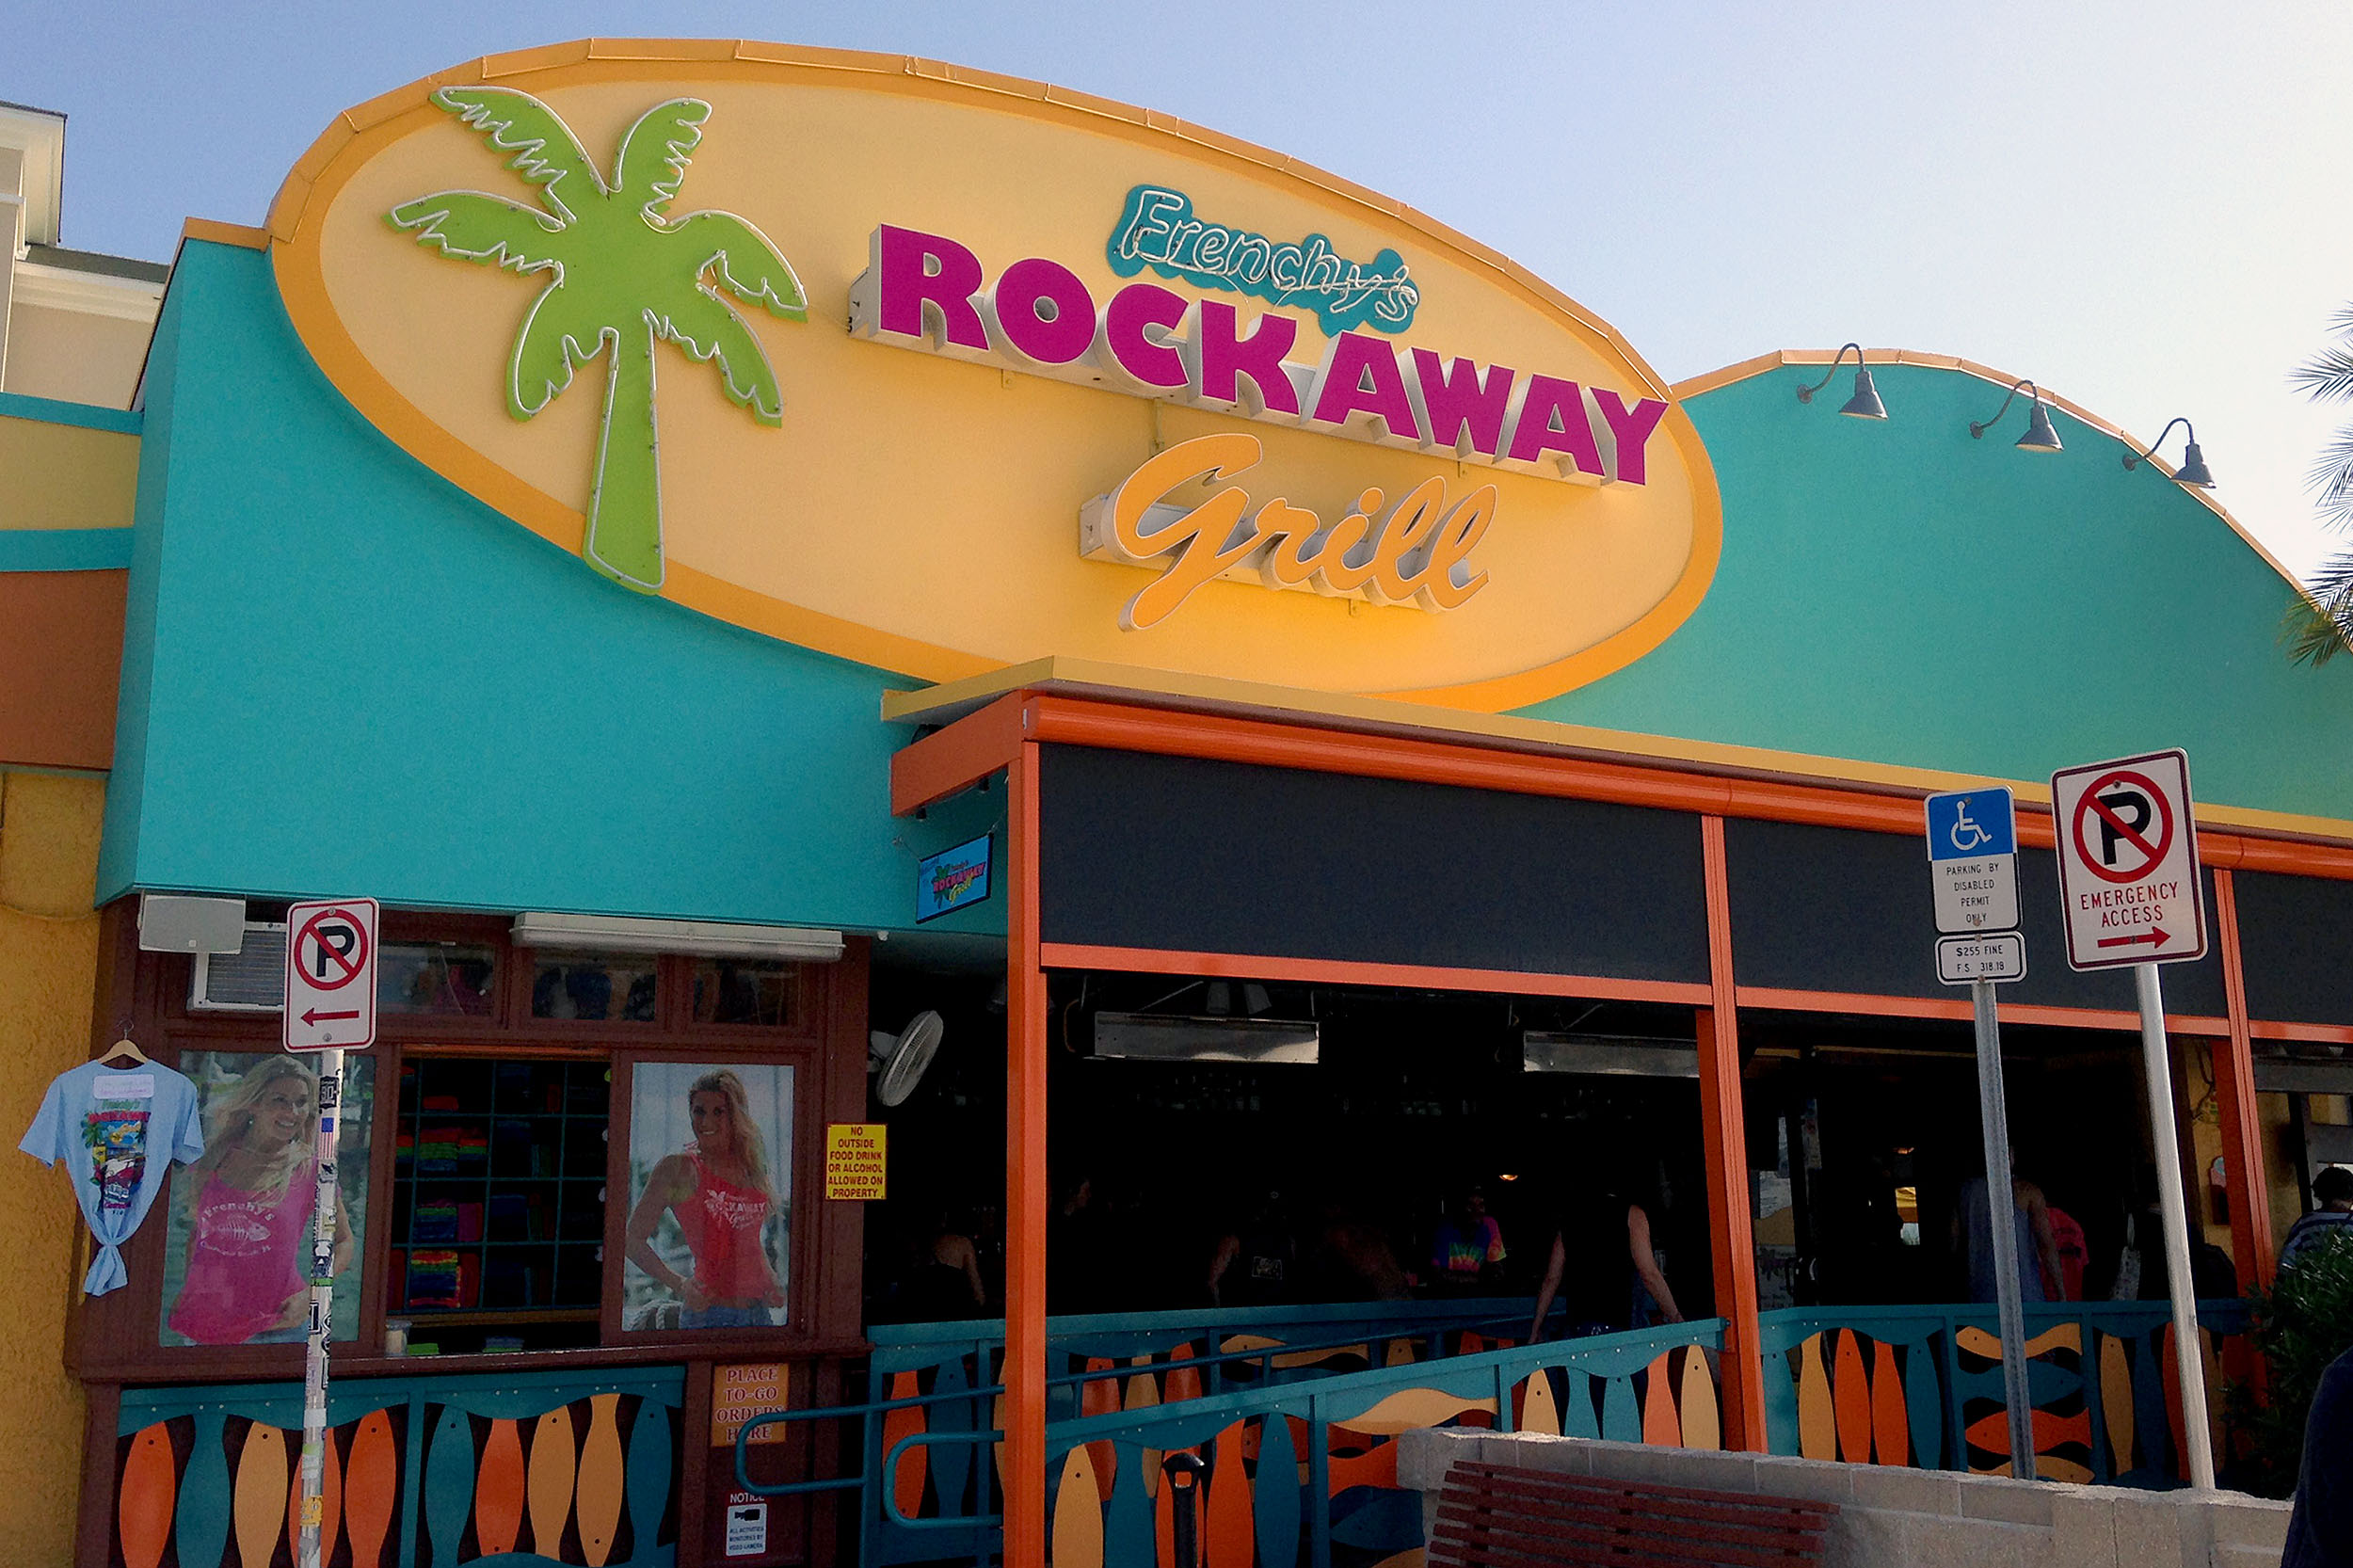 Frenchy's Rockaway Grill Clearwater Beach Florida